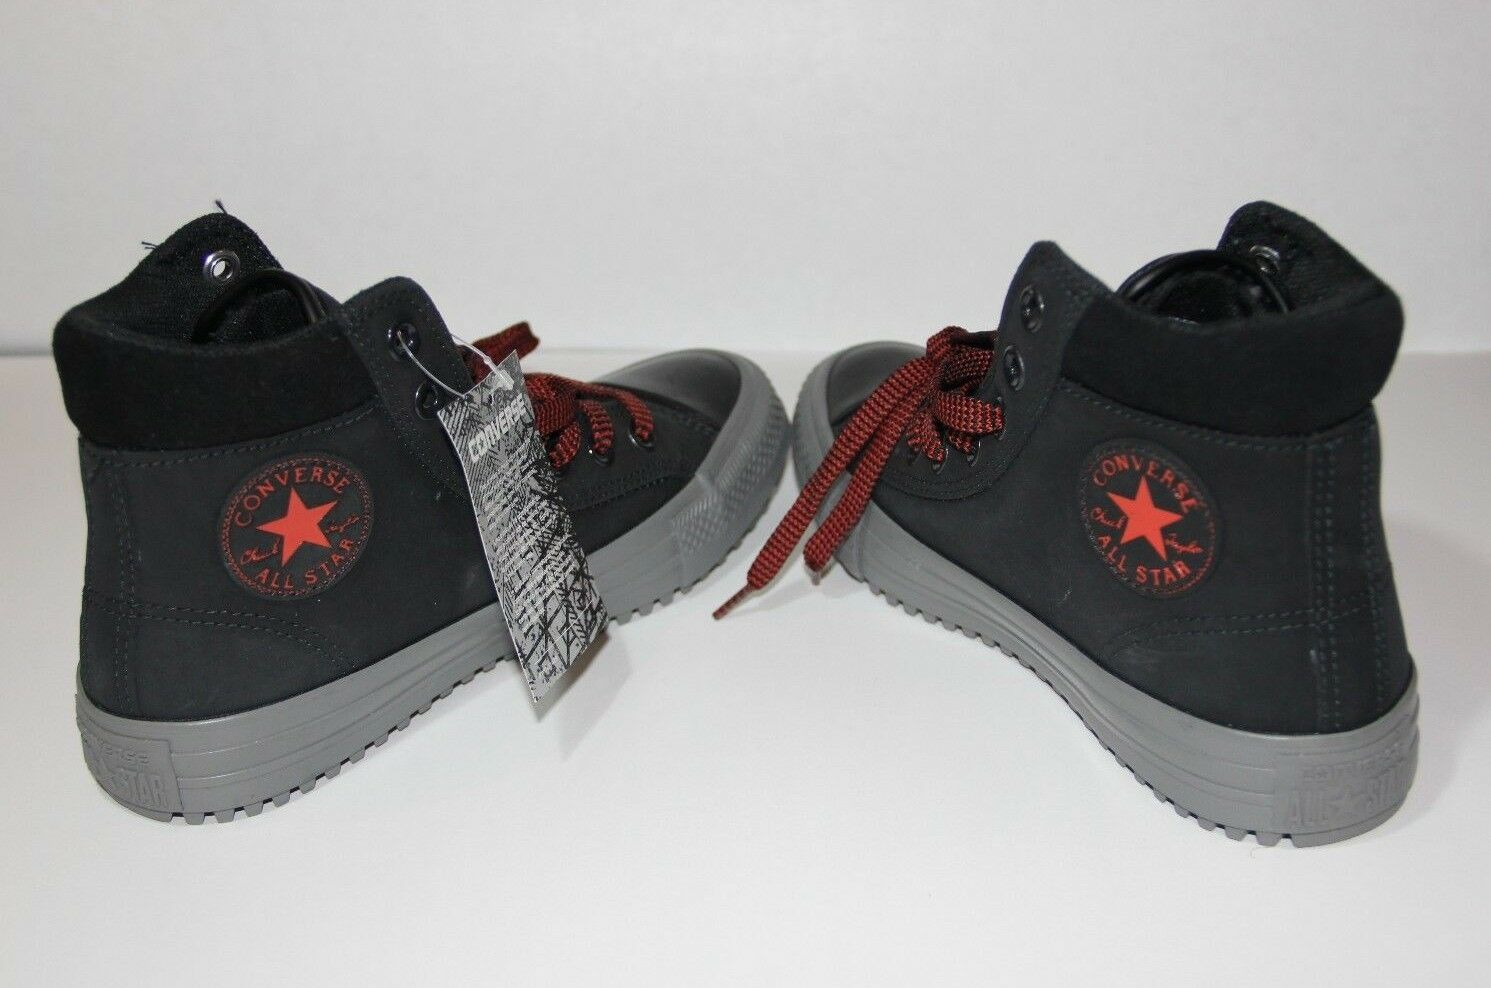 Converse Chuck Taylor All Star PC High Top Women Sz 6 US Boots Black/Red/Grey